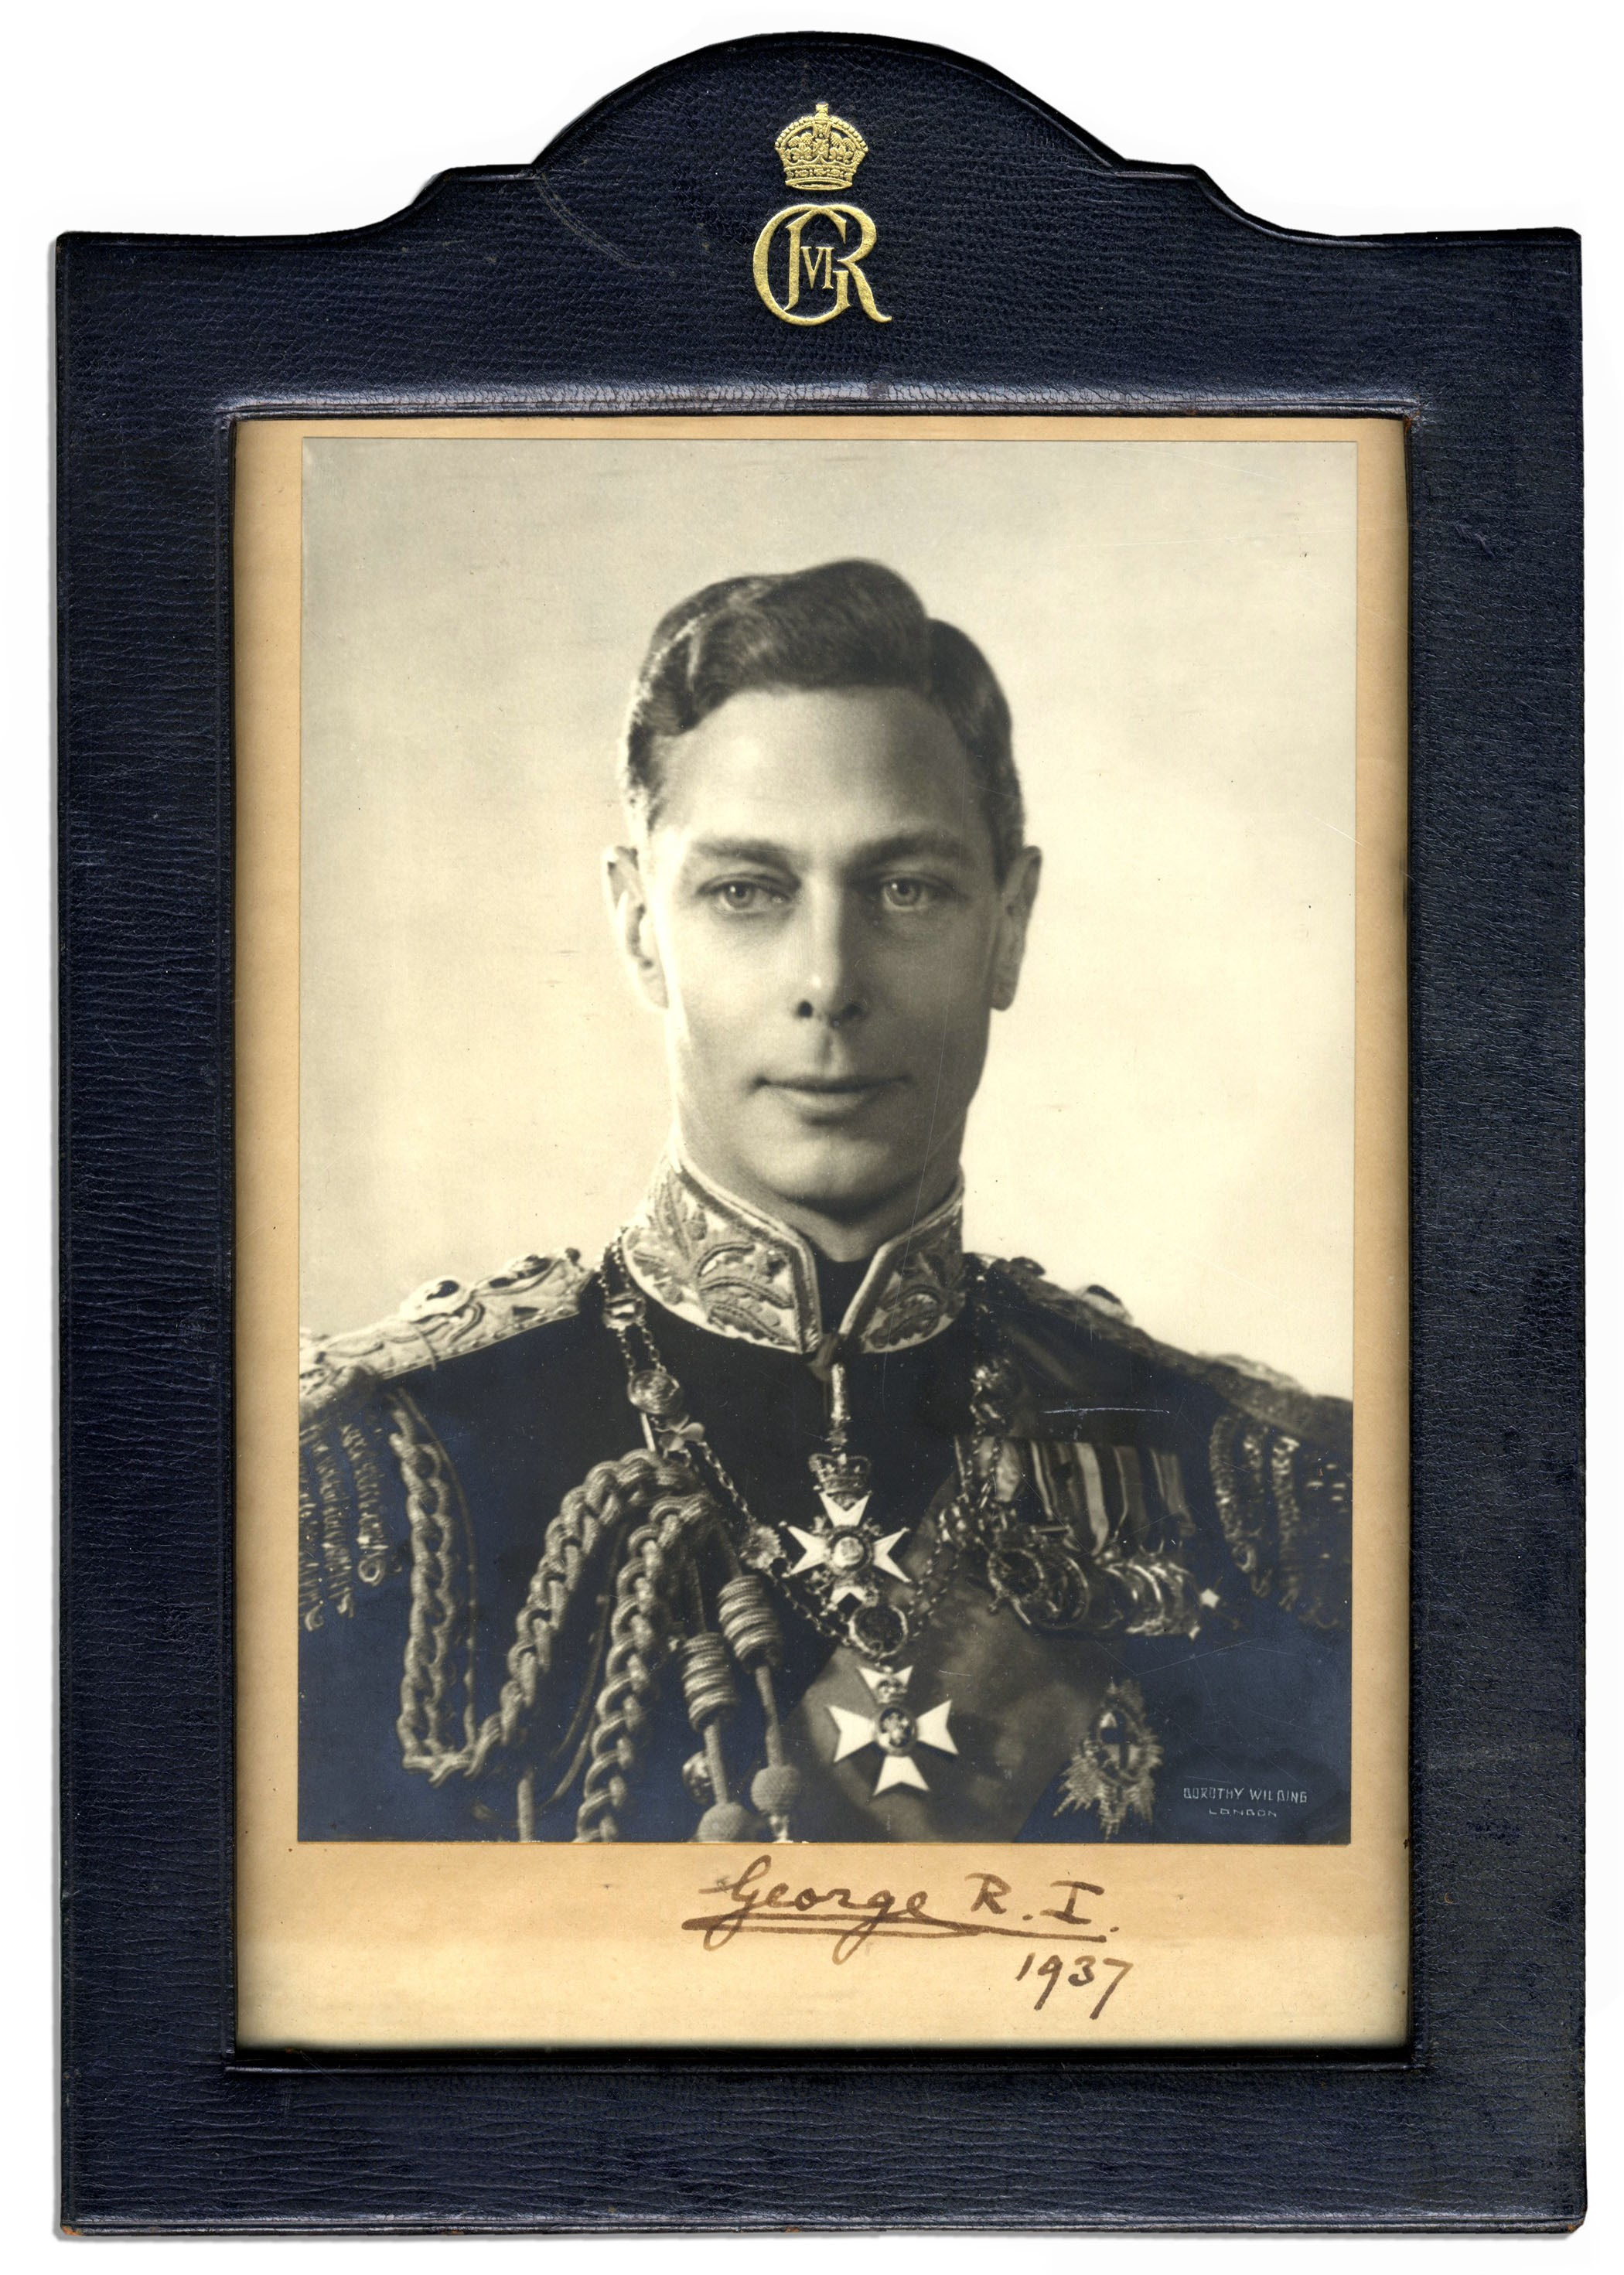 Elizabeth Ii Last Name King George Vi Known People Famous People News And